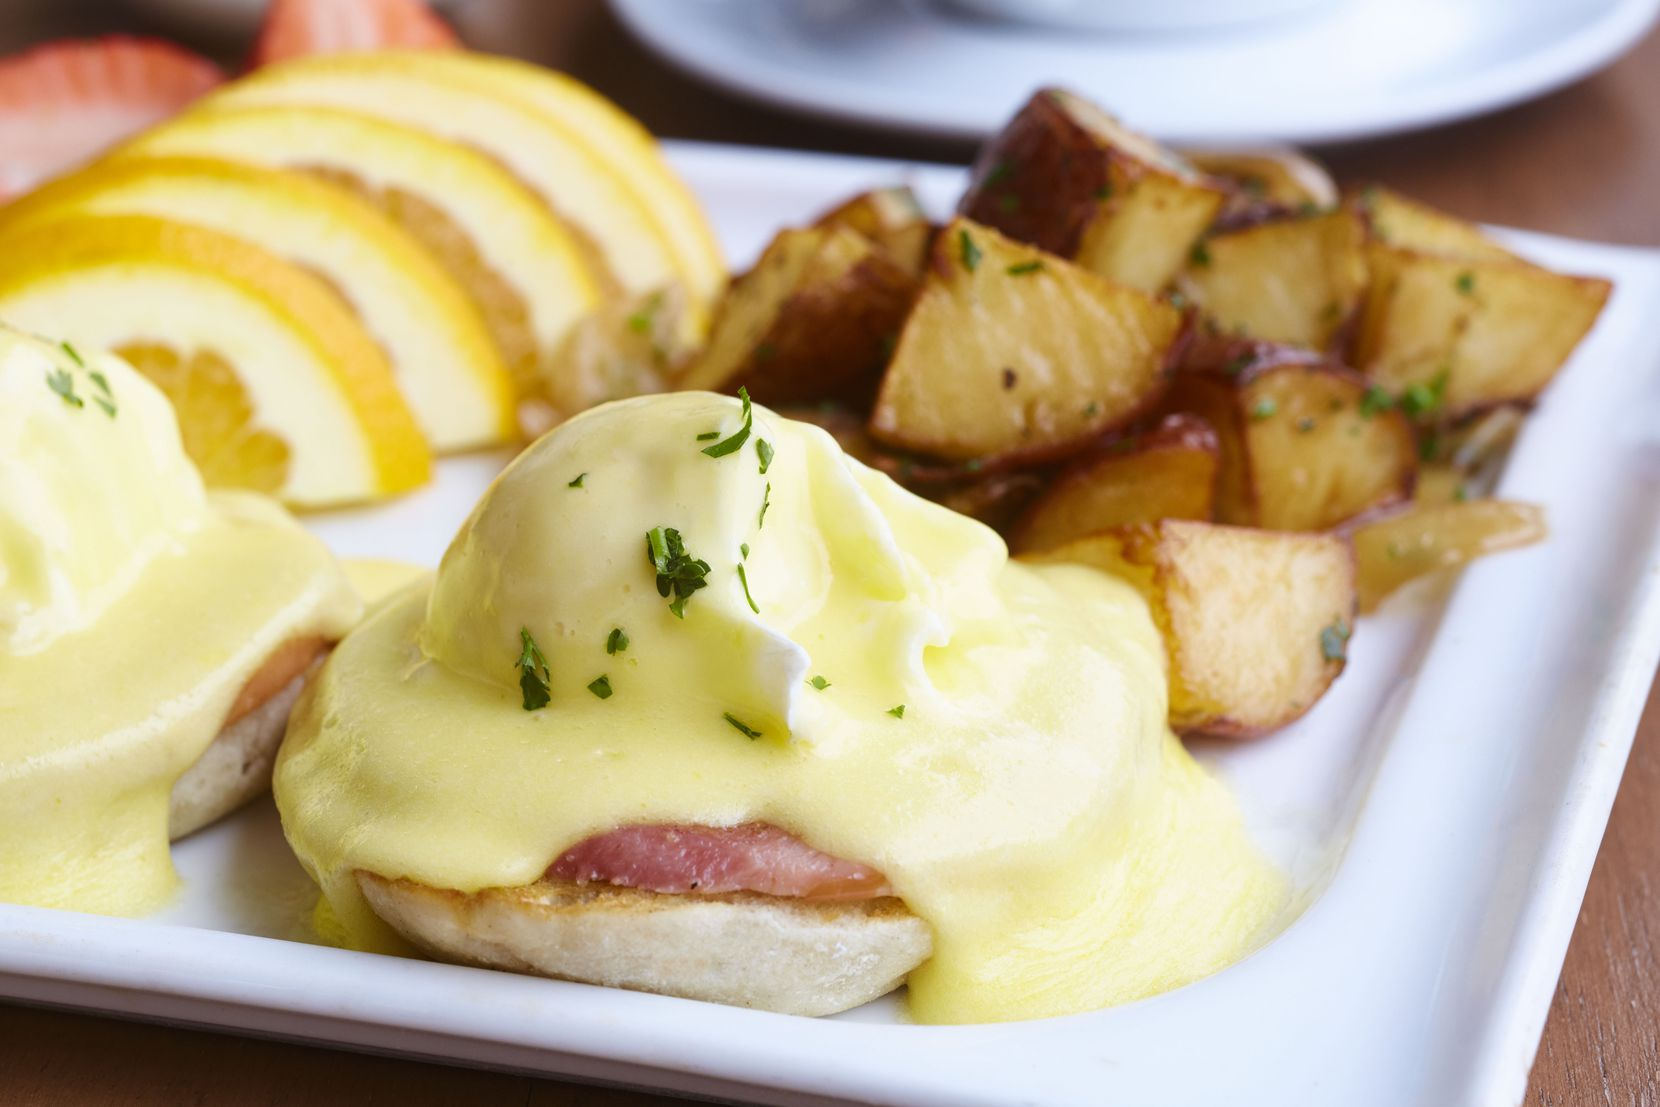 Al Biernat's offers eggs Benedict as part of its Easter brunch this year.